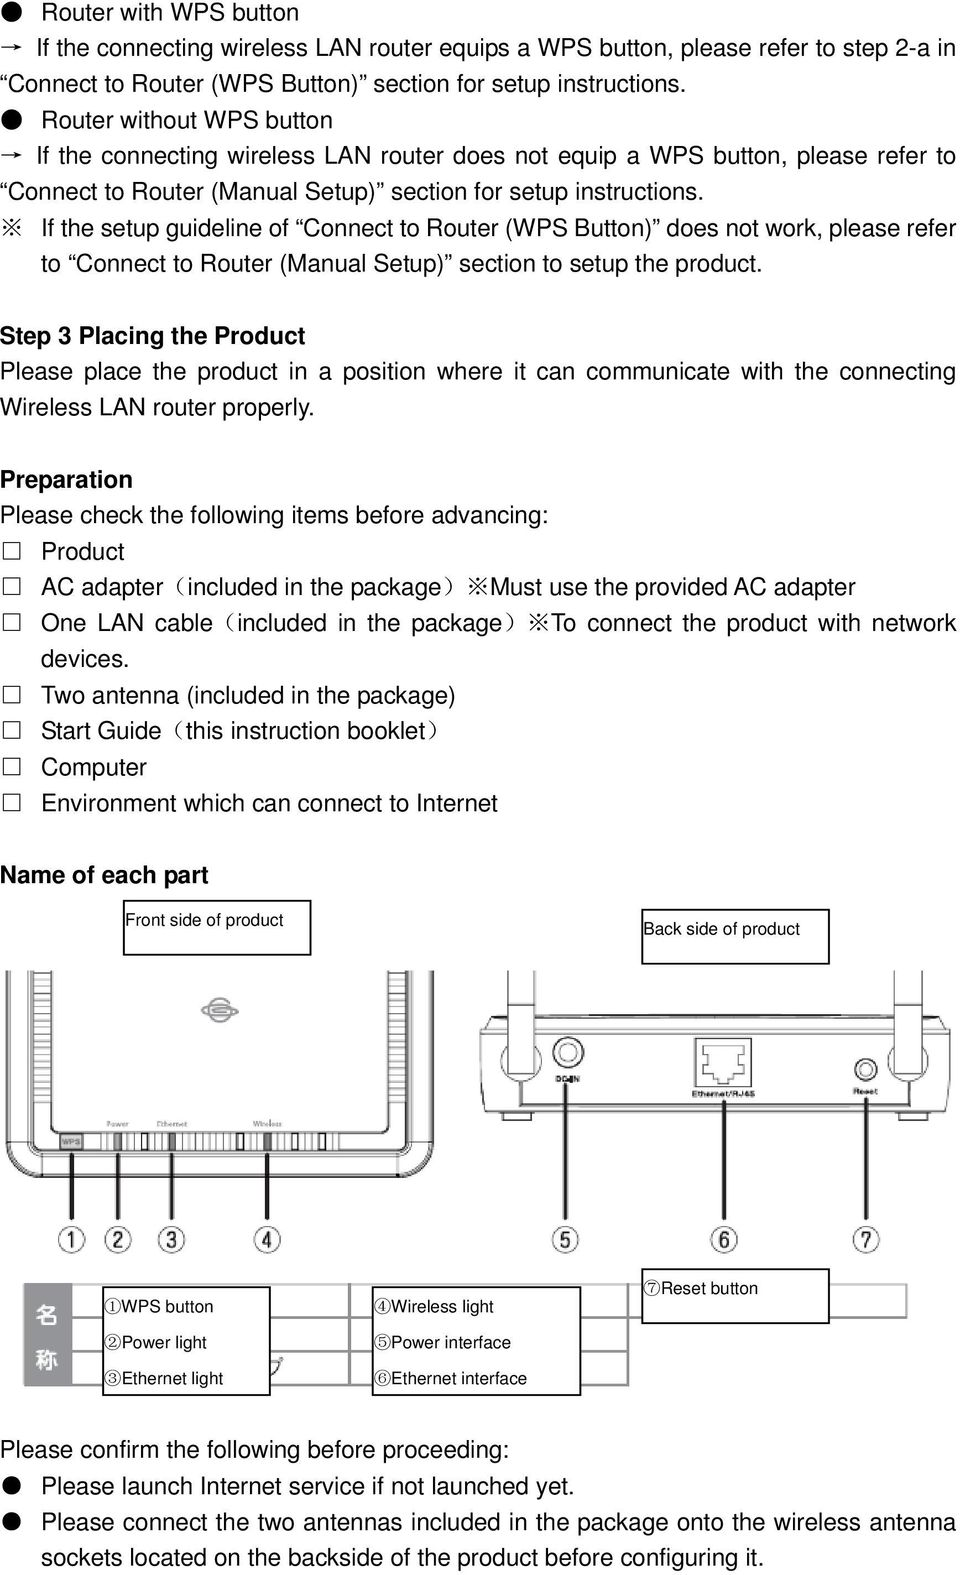 If the setup guideline of Connect to Router (WPS Button) does not work, please refer to Connect to Router (Manual Setup) section to setup the product.